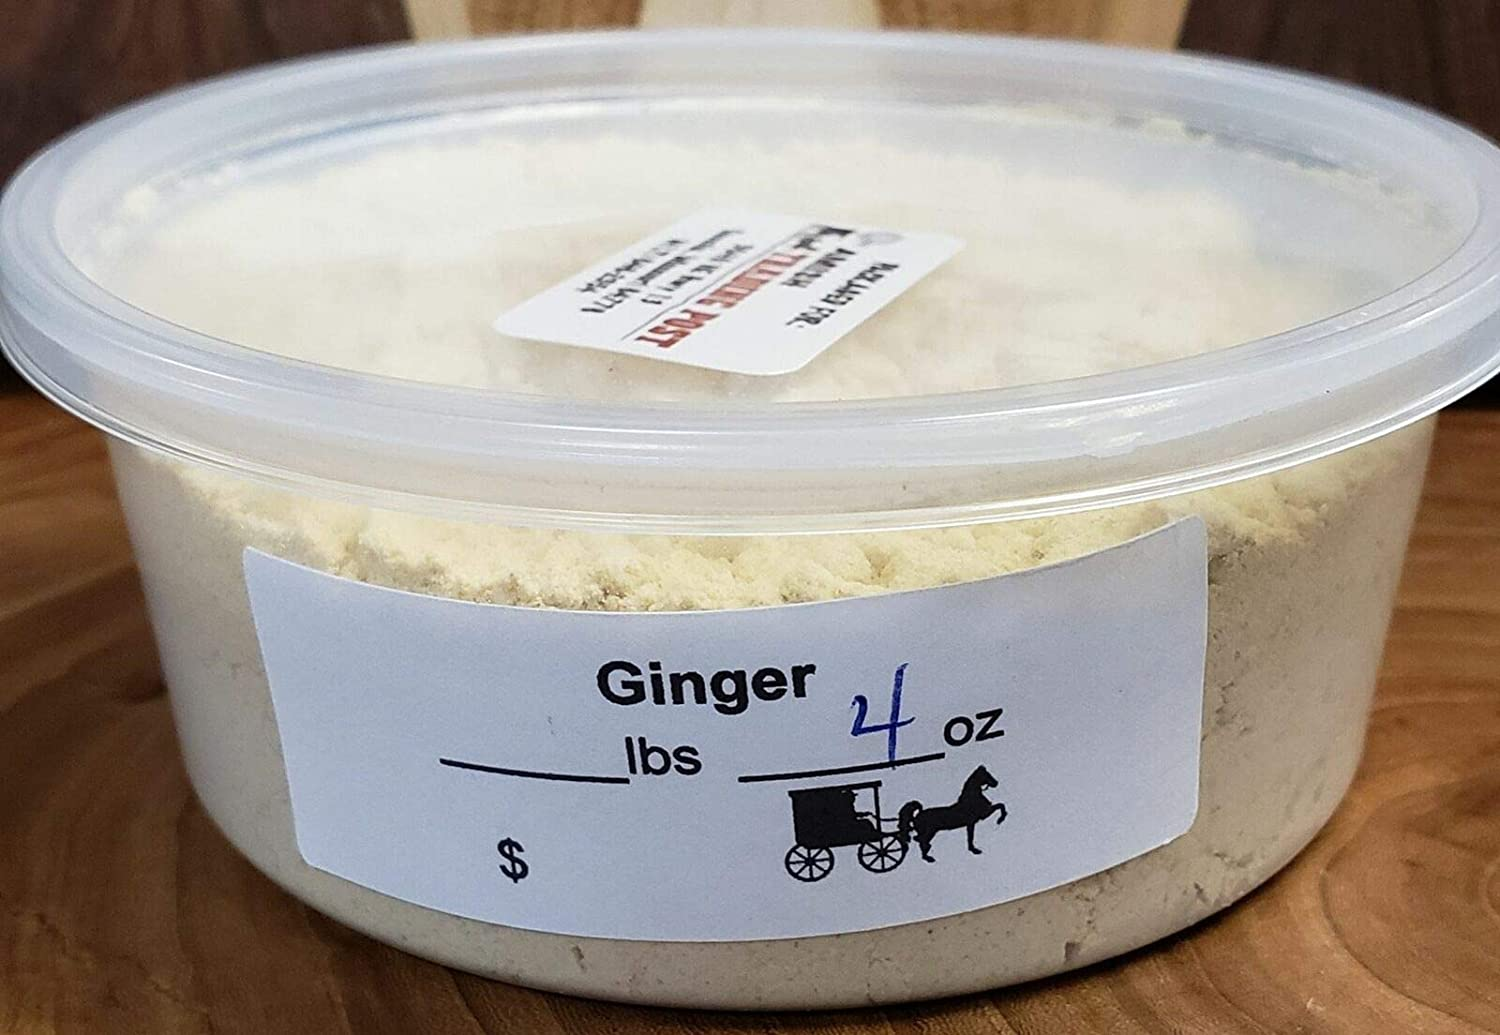 Ginger New Cheap super special price Shipping Free